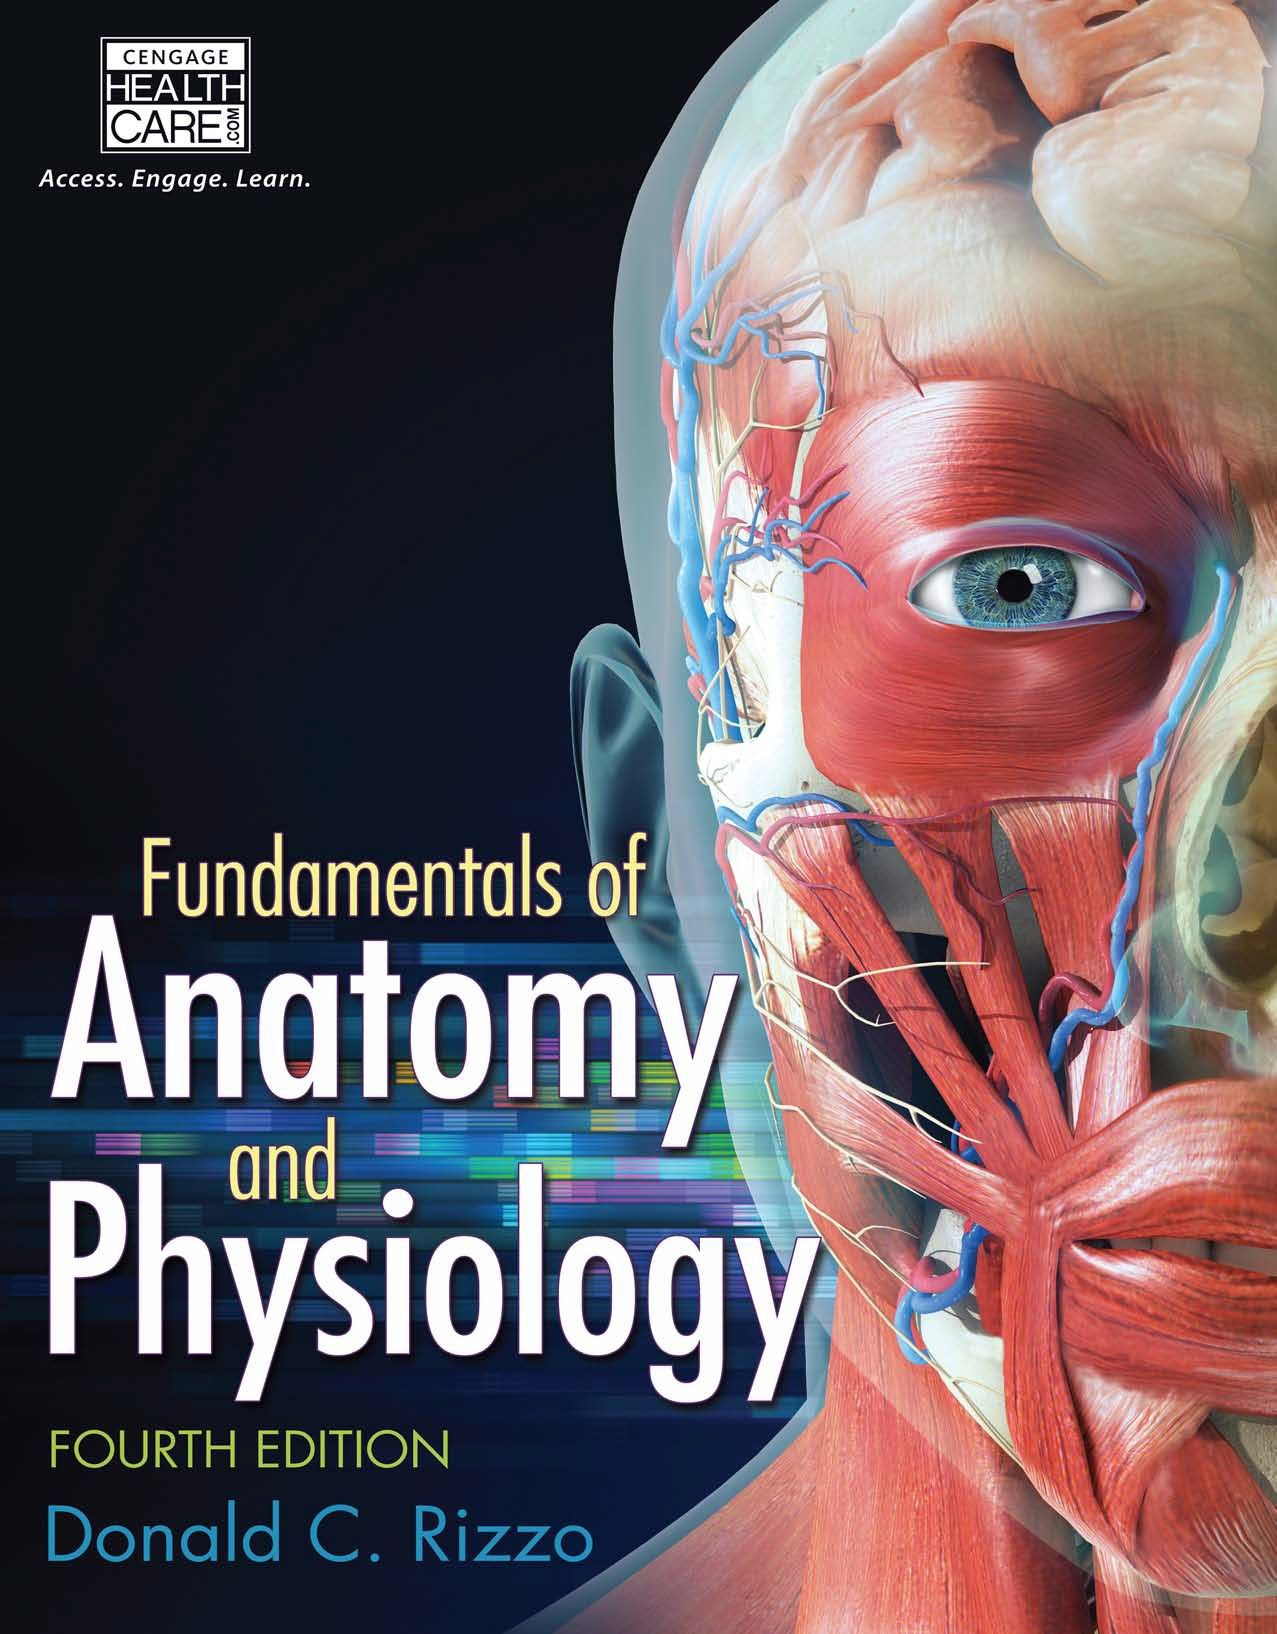 Fundamentals of Anatomy and Physiology 4th Edition pdf | Pinterest ...